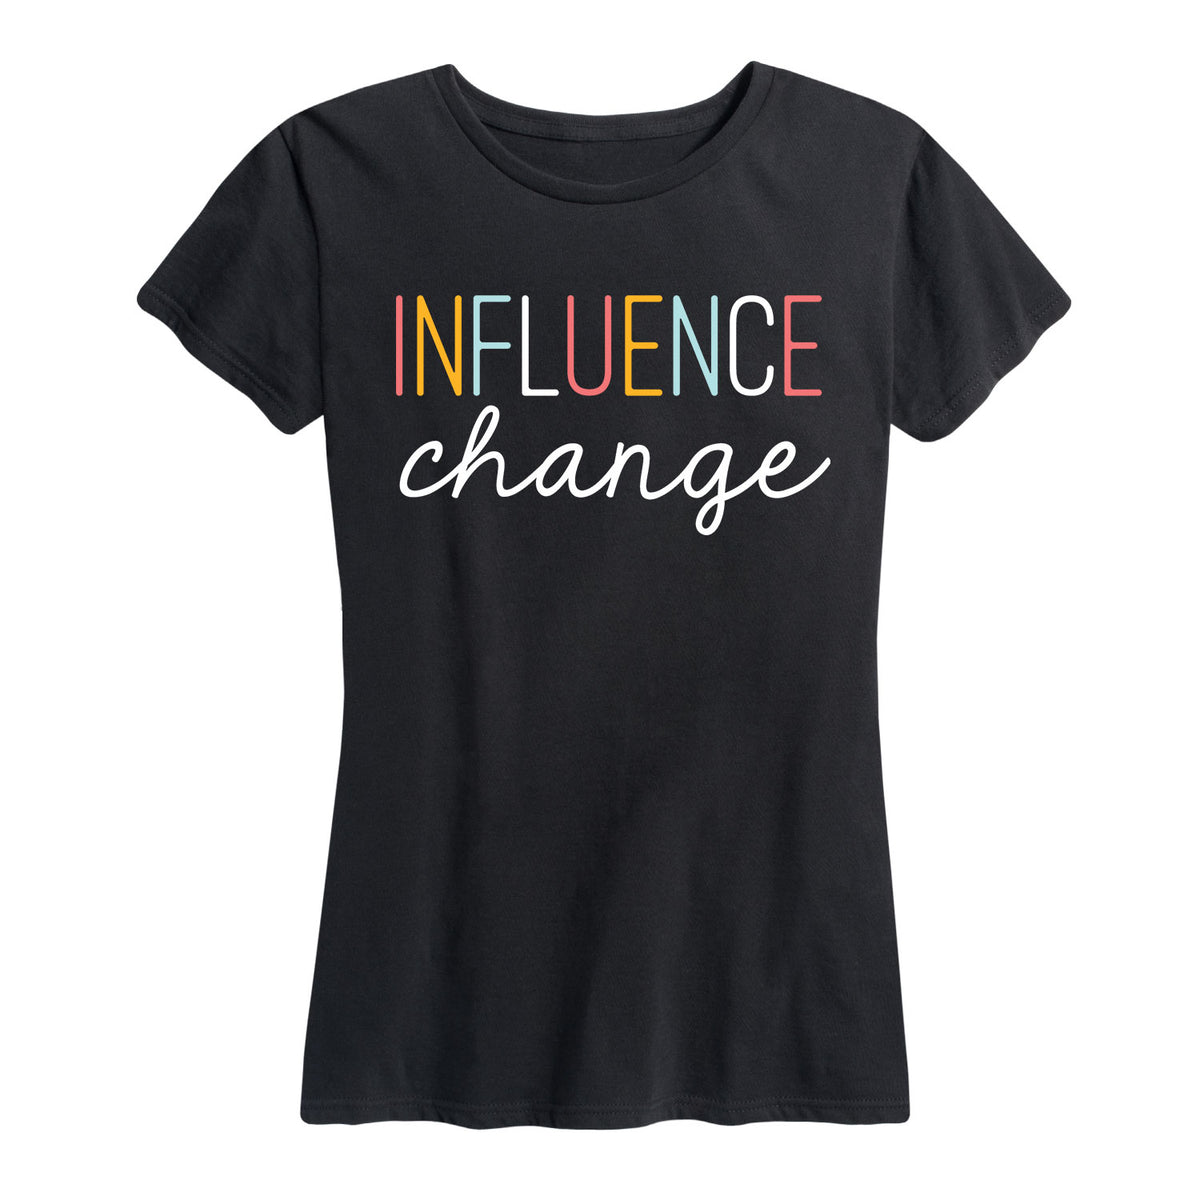 Influence Change - Women's Short Sleeve T-Shirt